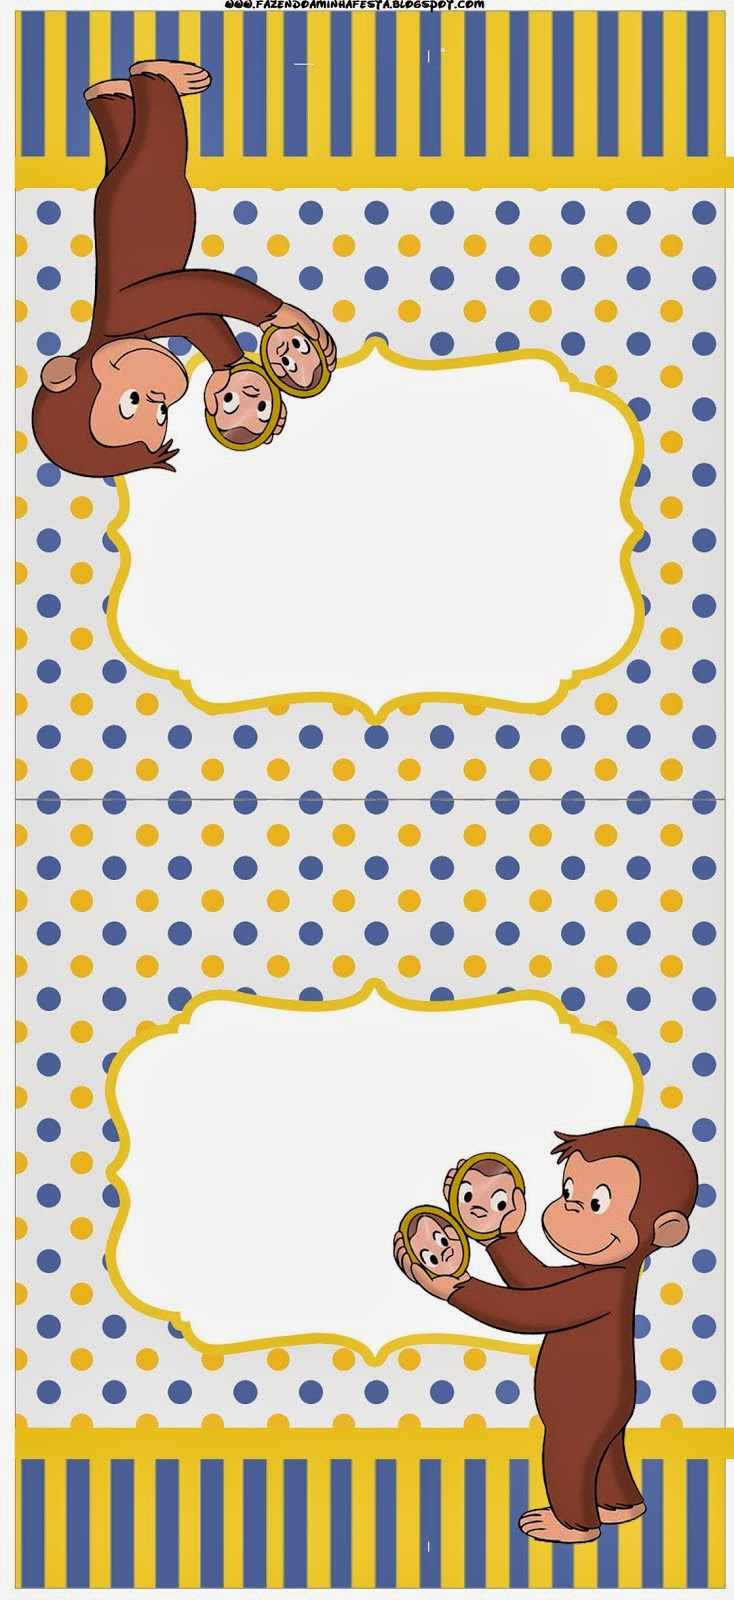 Curious George Free Party Printables. | Oh My Fiesta! in ...